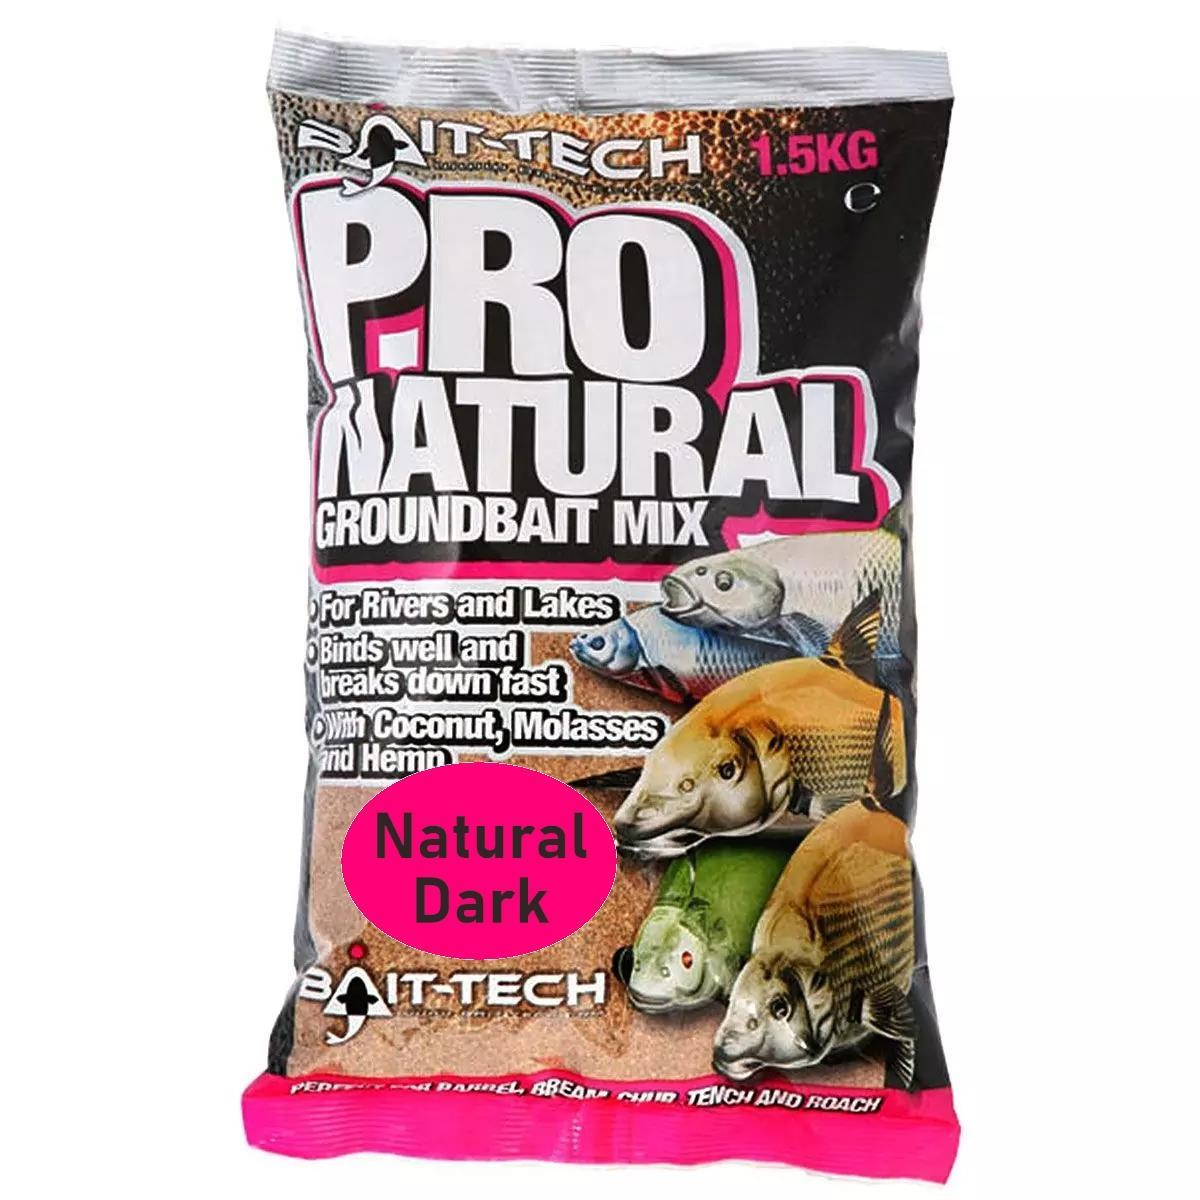 Bait-Tech Pro Natural Groundbait 1.5kg - Natural Dark